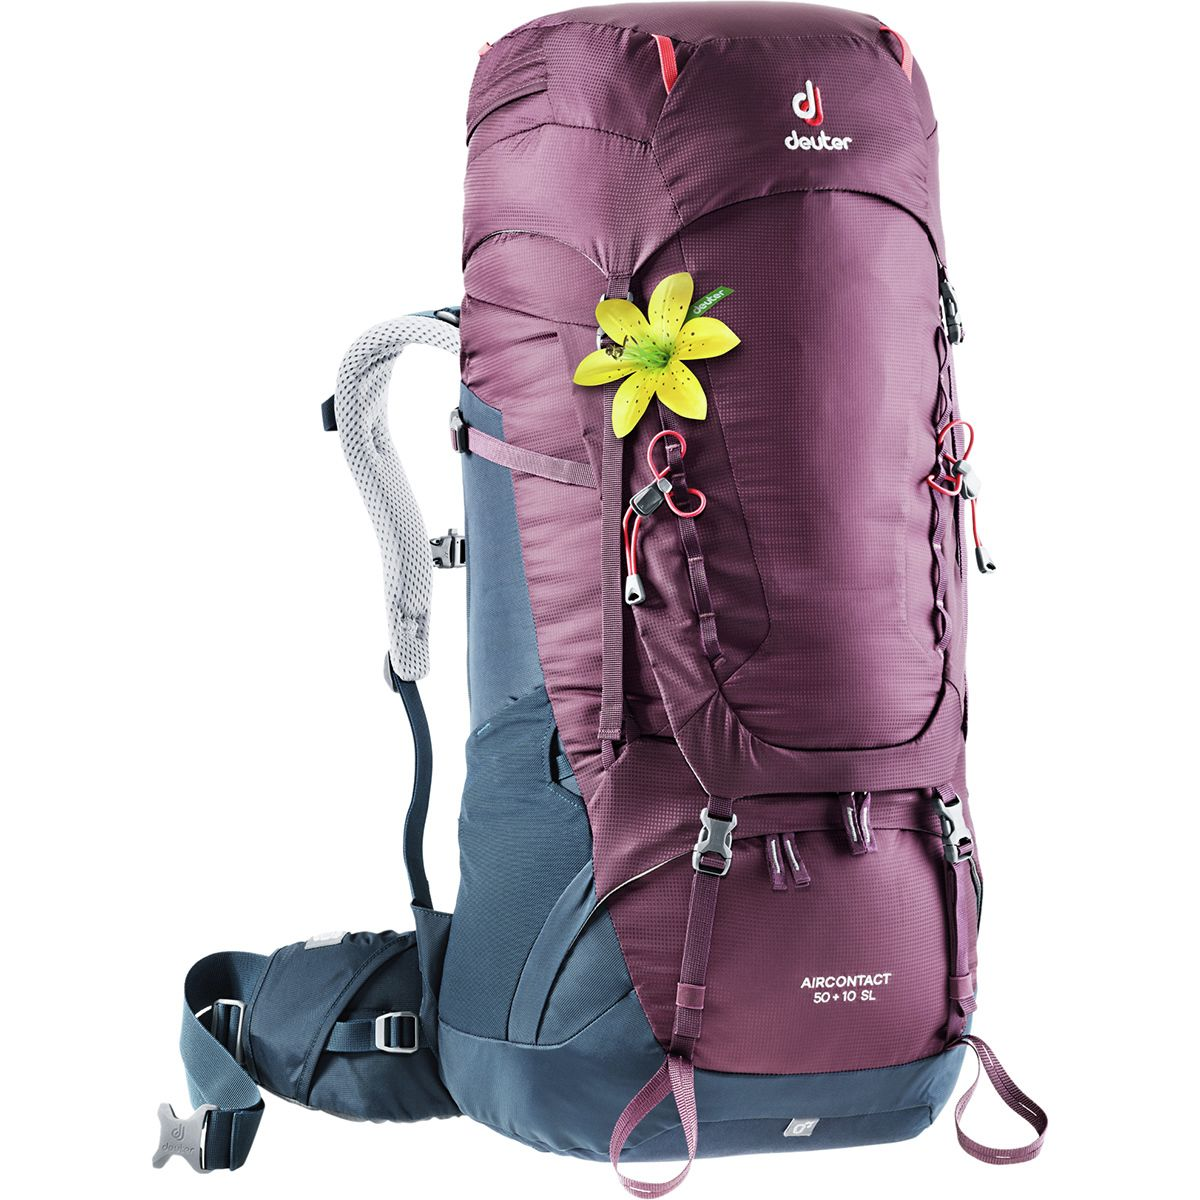 photo: Deuter Aircontact 50+10 SL weekend pack (50-69l)